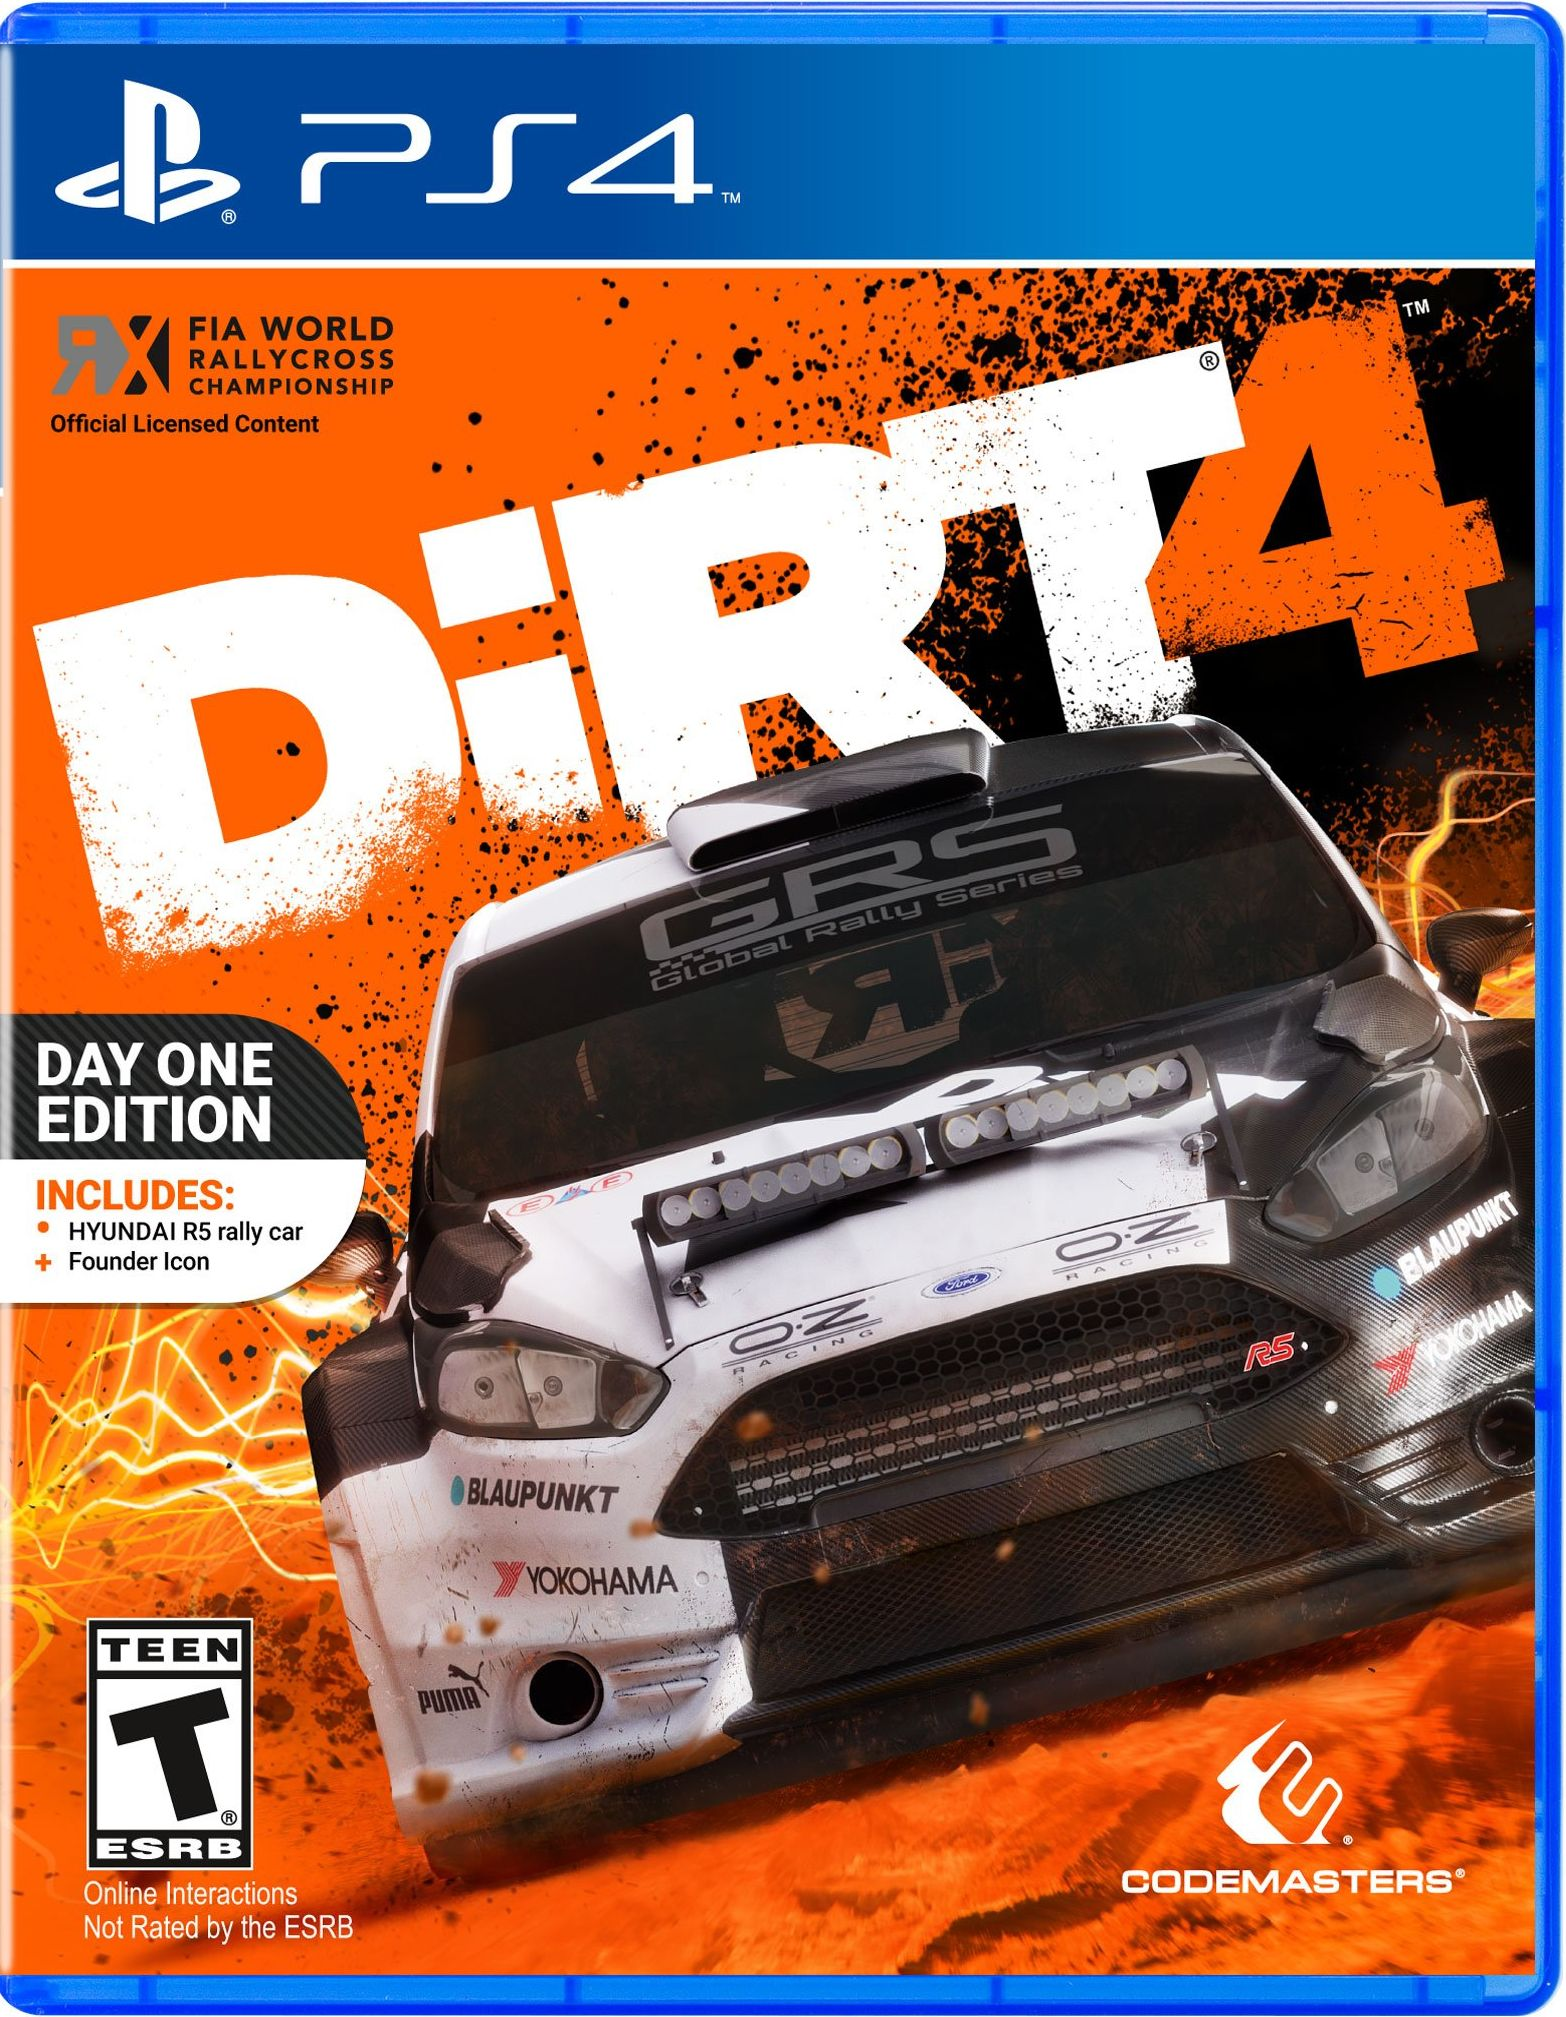 DiRT 4 Release Date (Xbox One, PS4)